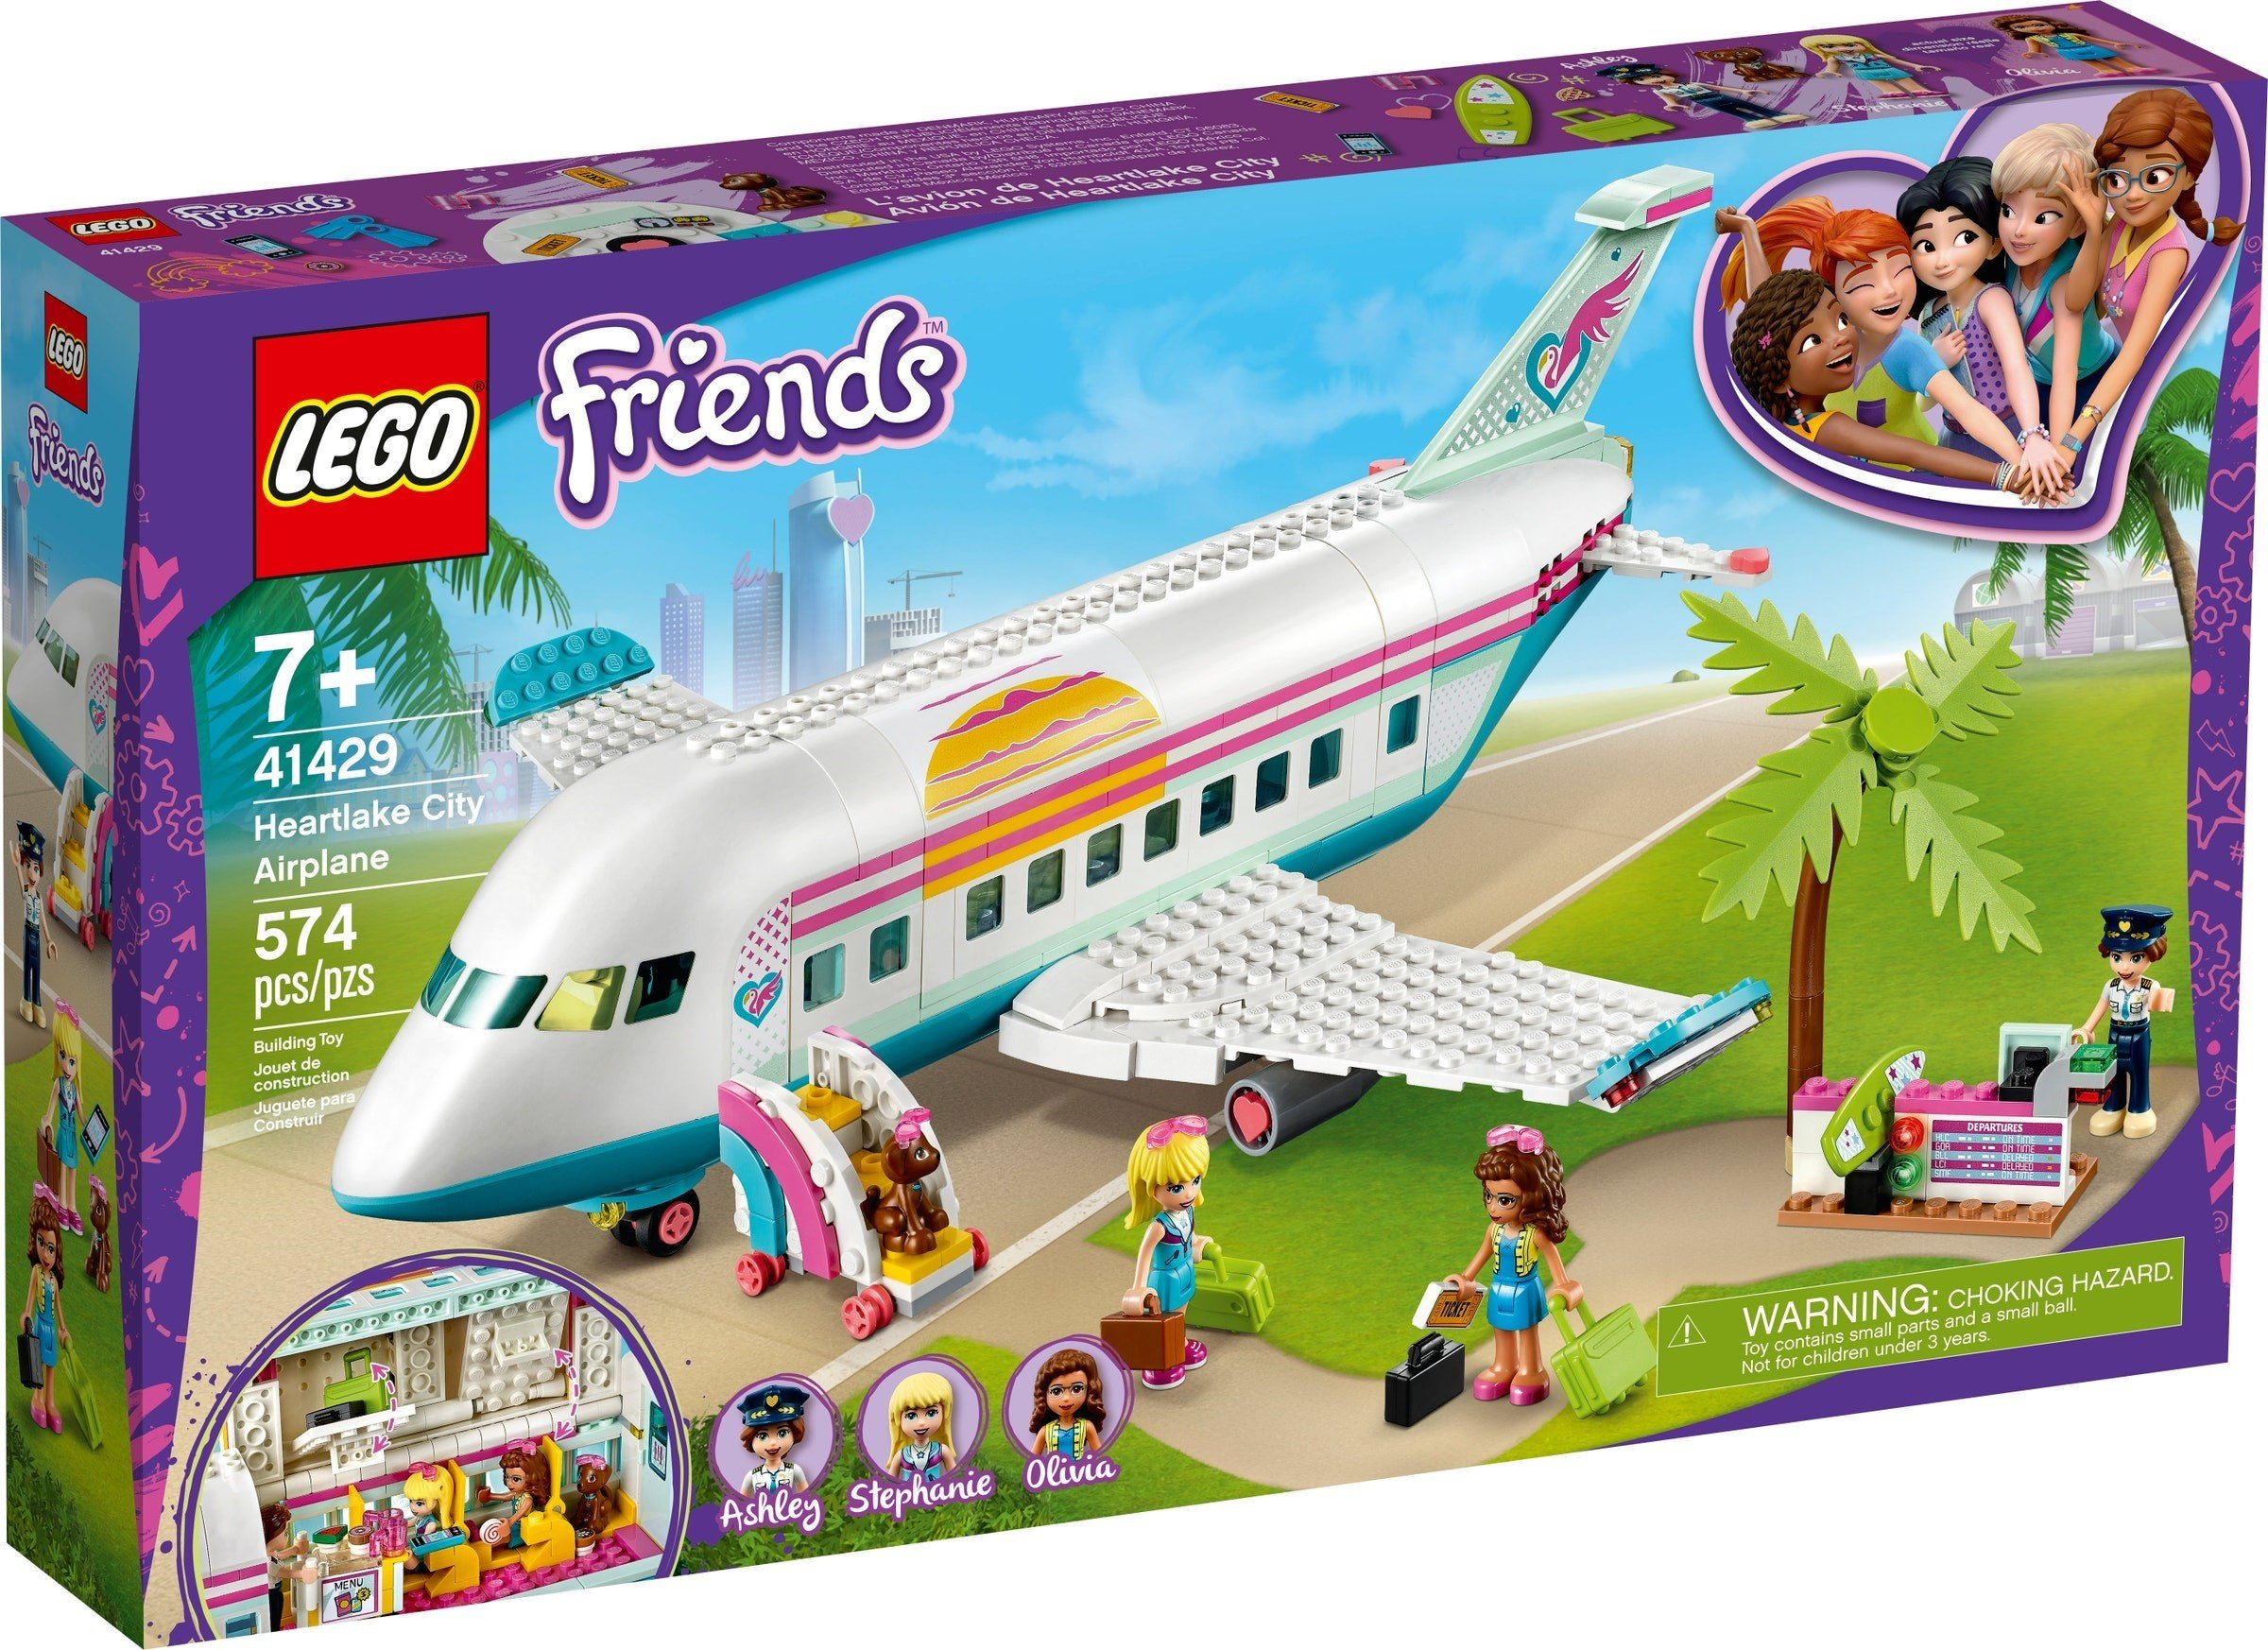 LEGO Friends - Heartlake City Airplane (41429)